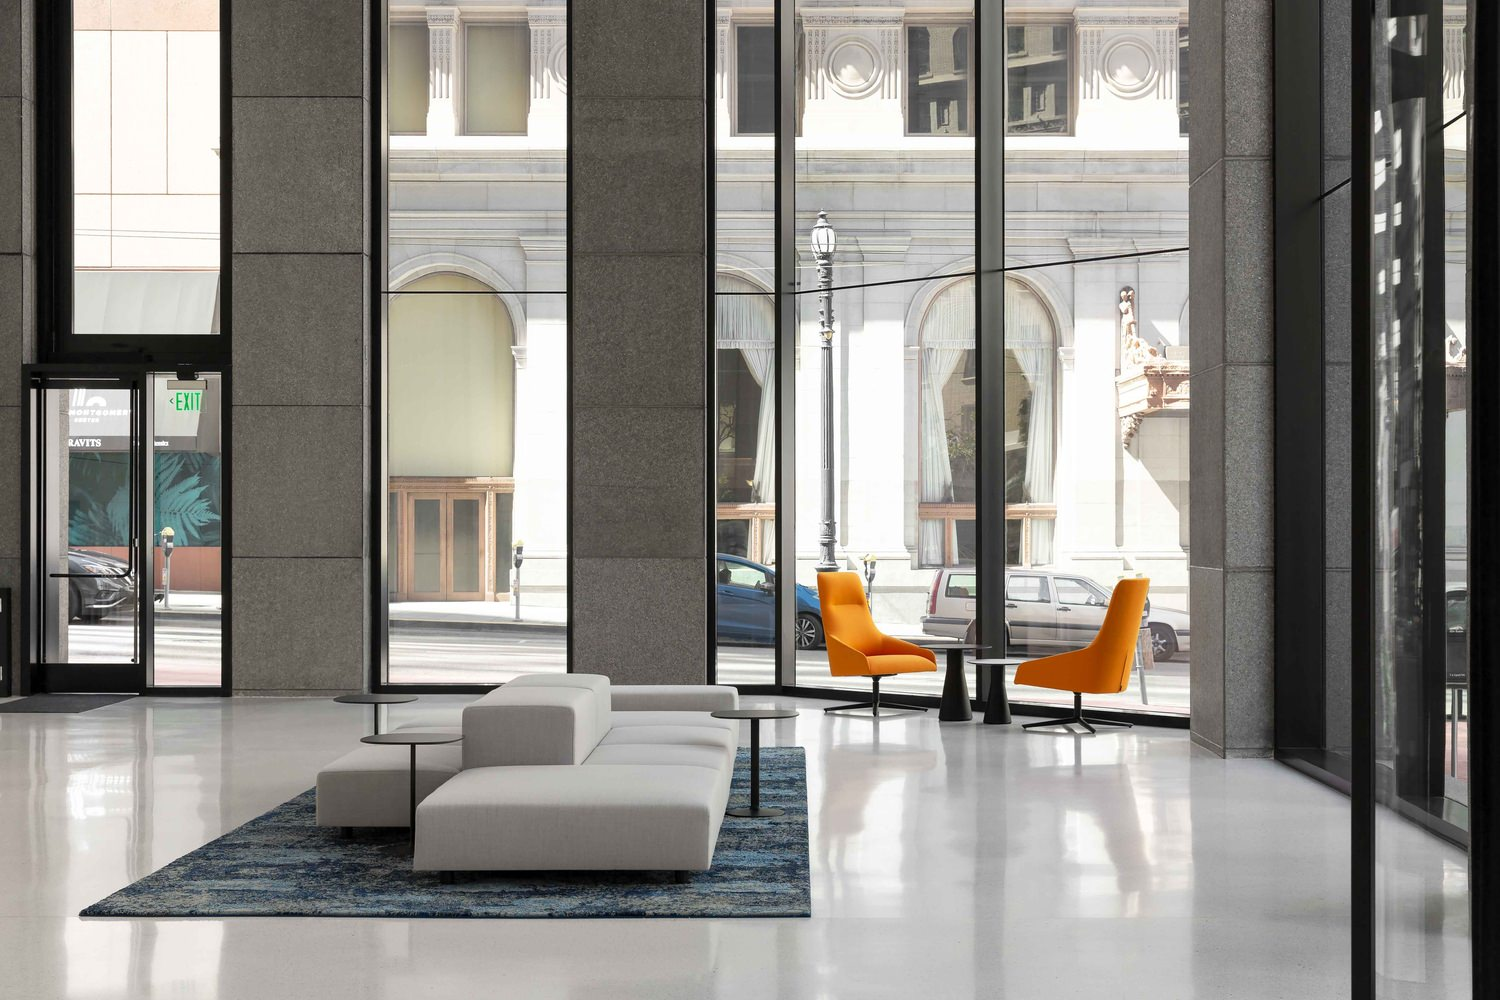 A lobby in a building that has a white couch and a table that has two orange chairs at it.